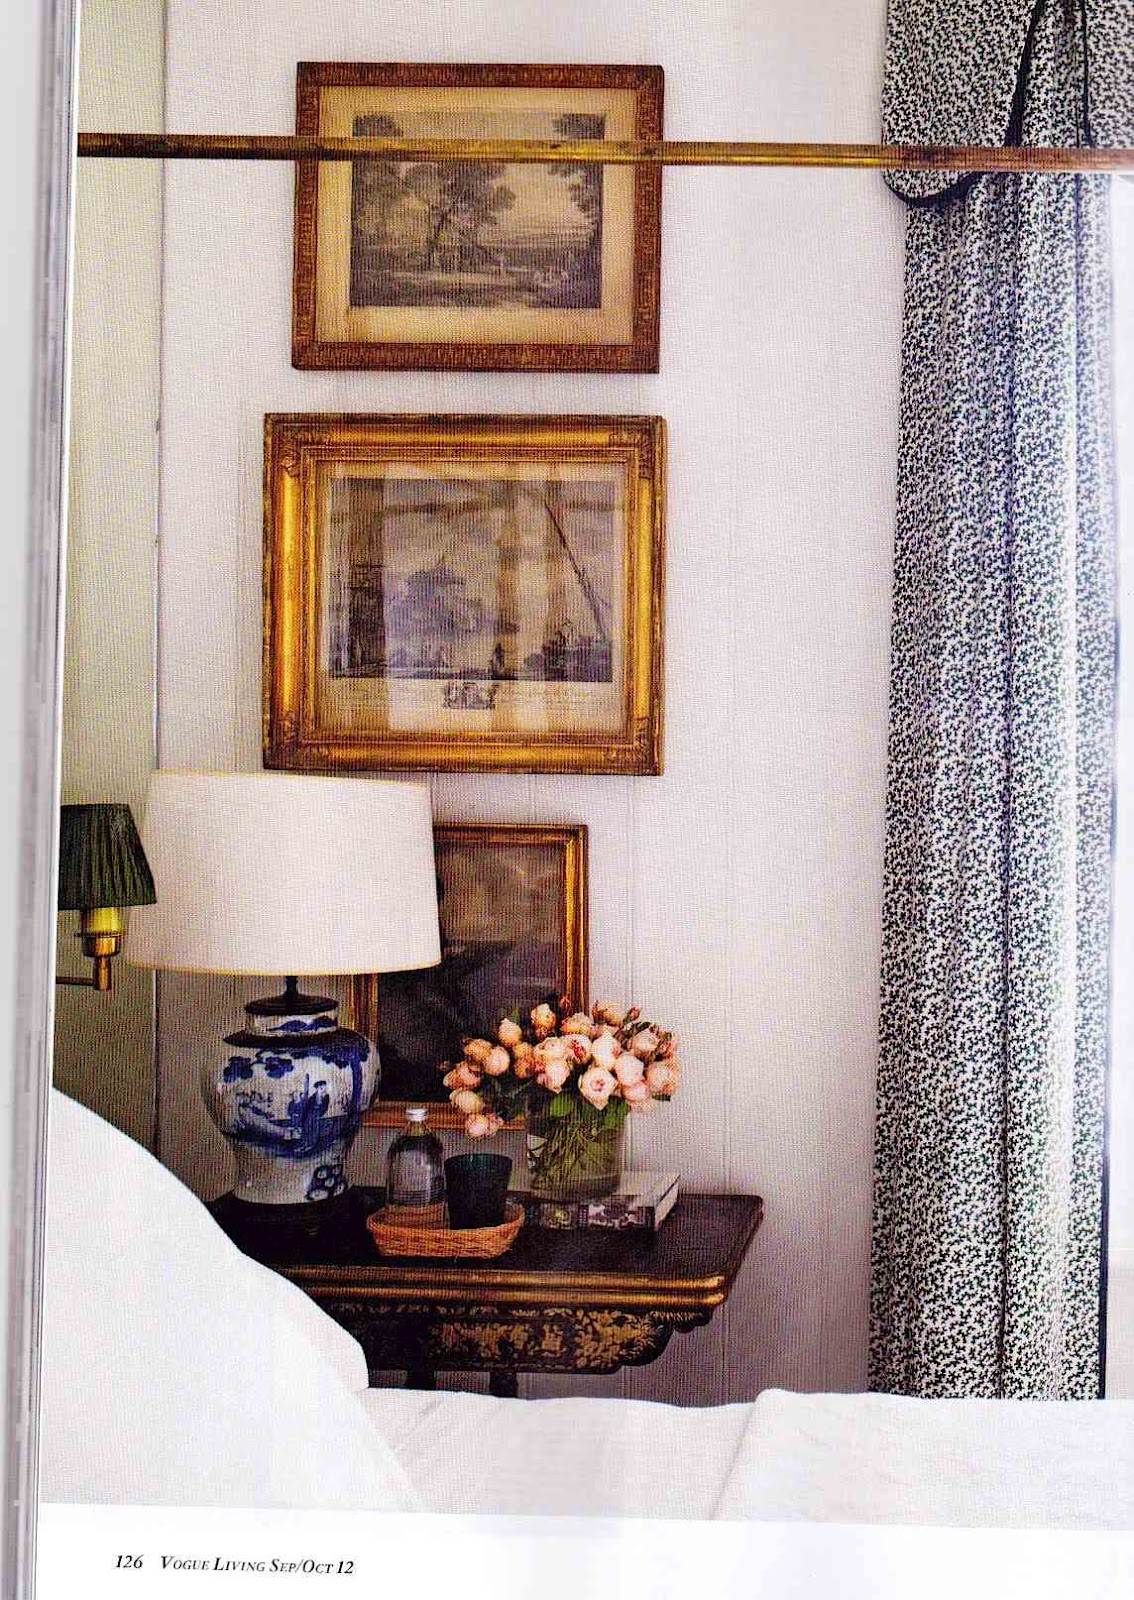 Bedroom Living Prayer Room And Study Room: A Library Of Design: Vogue Living. Just Beautiful